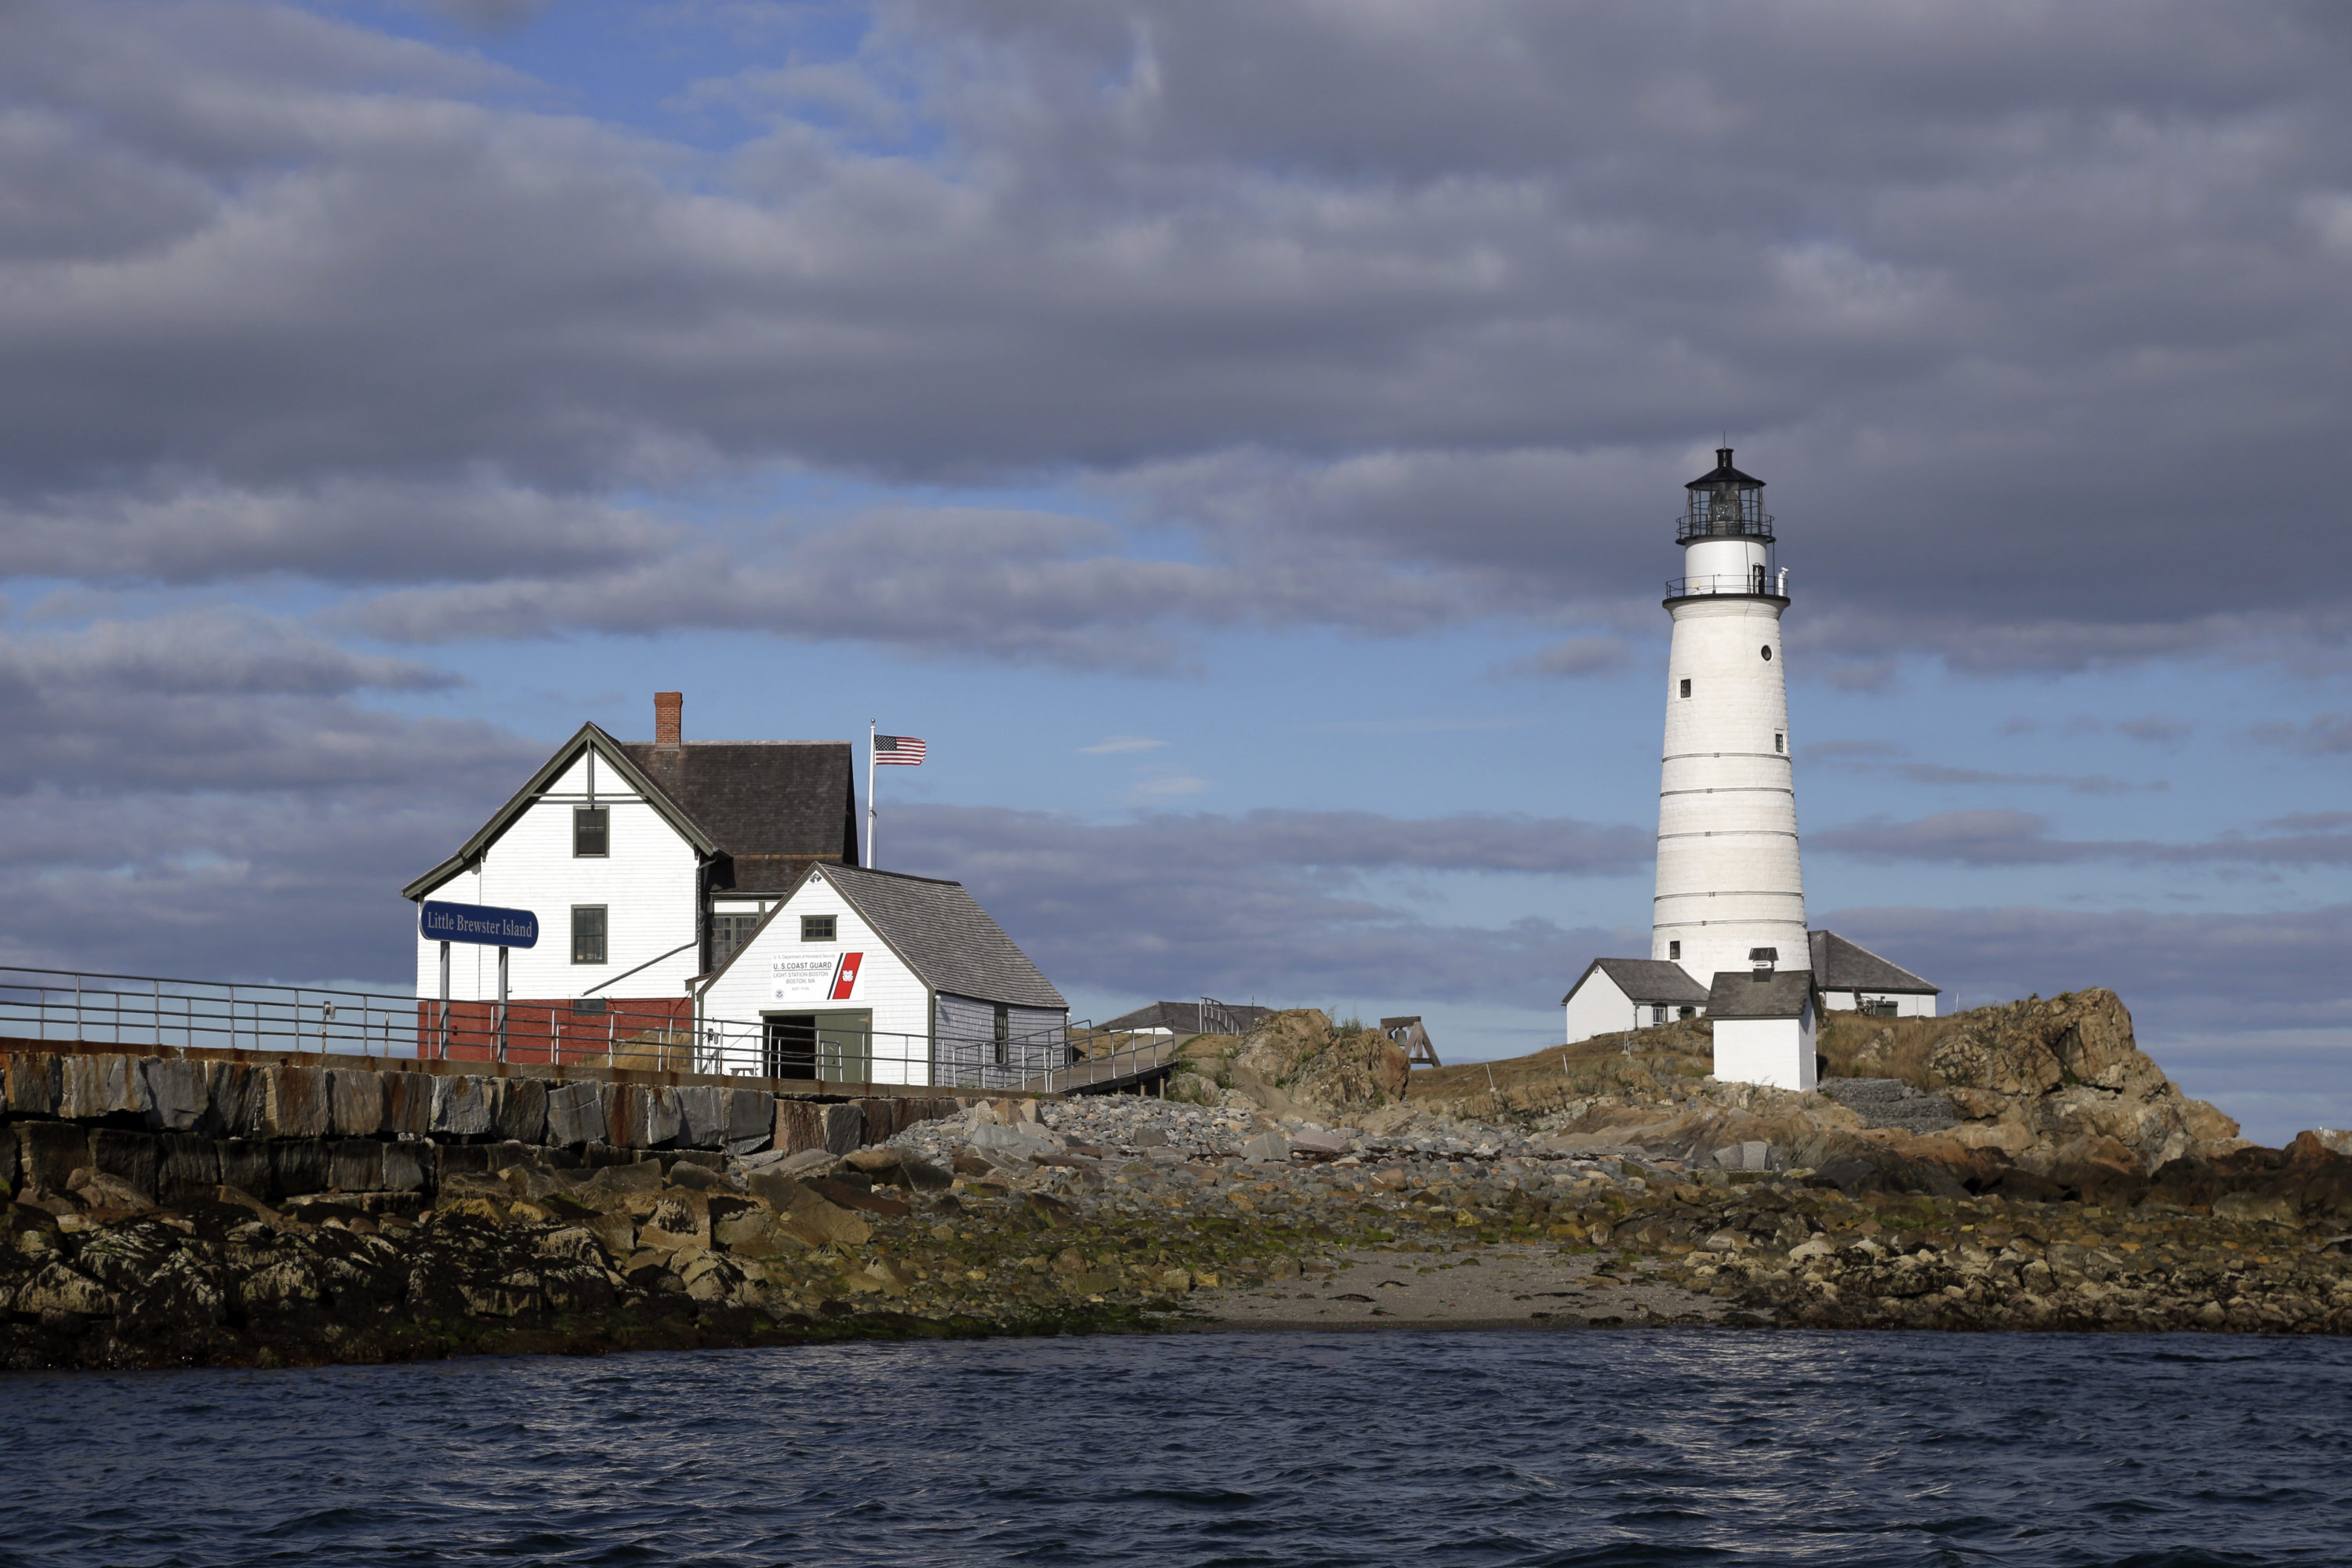 Boston Light, America's oldest lighthouse, sits on Little Brewster Island in Boston Harbor. (Elise Amendola/AP)